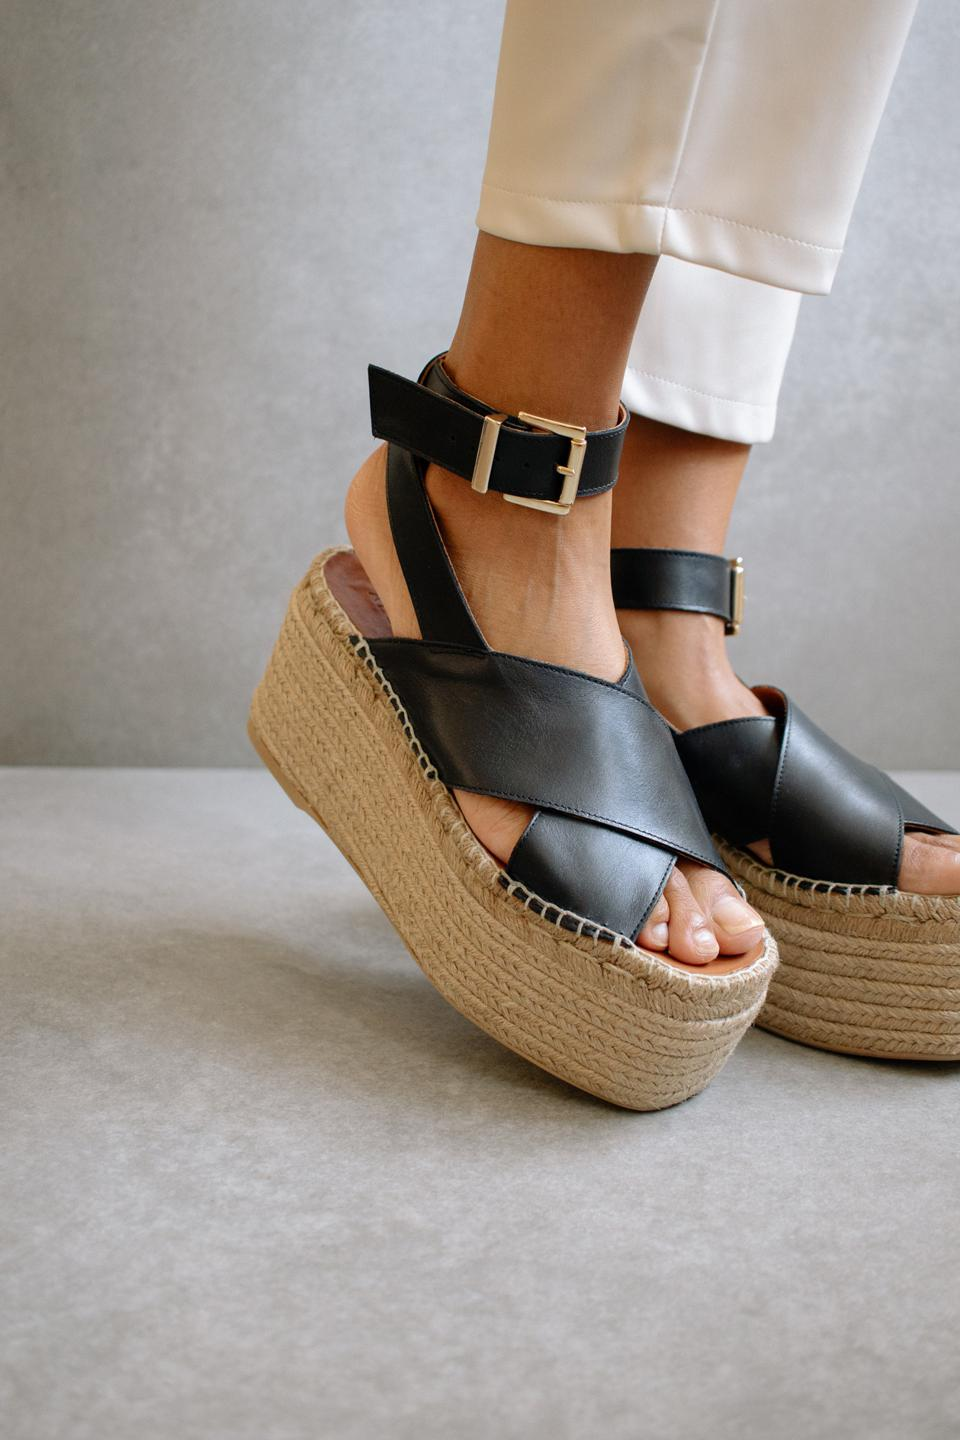 Willow Black sandal, by Alohas.